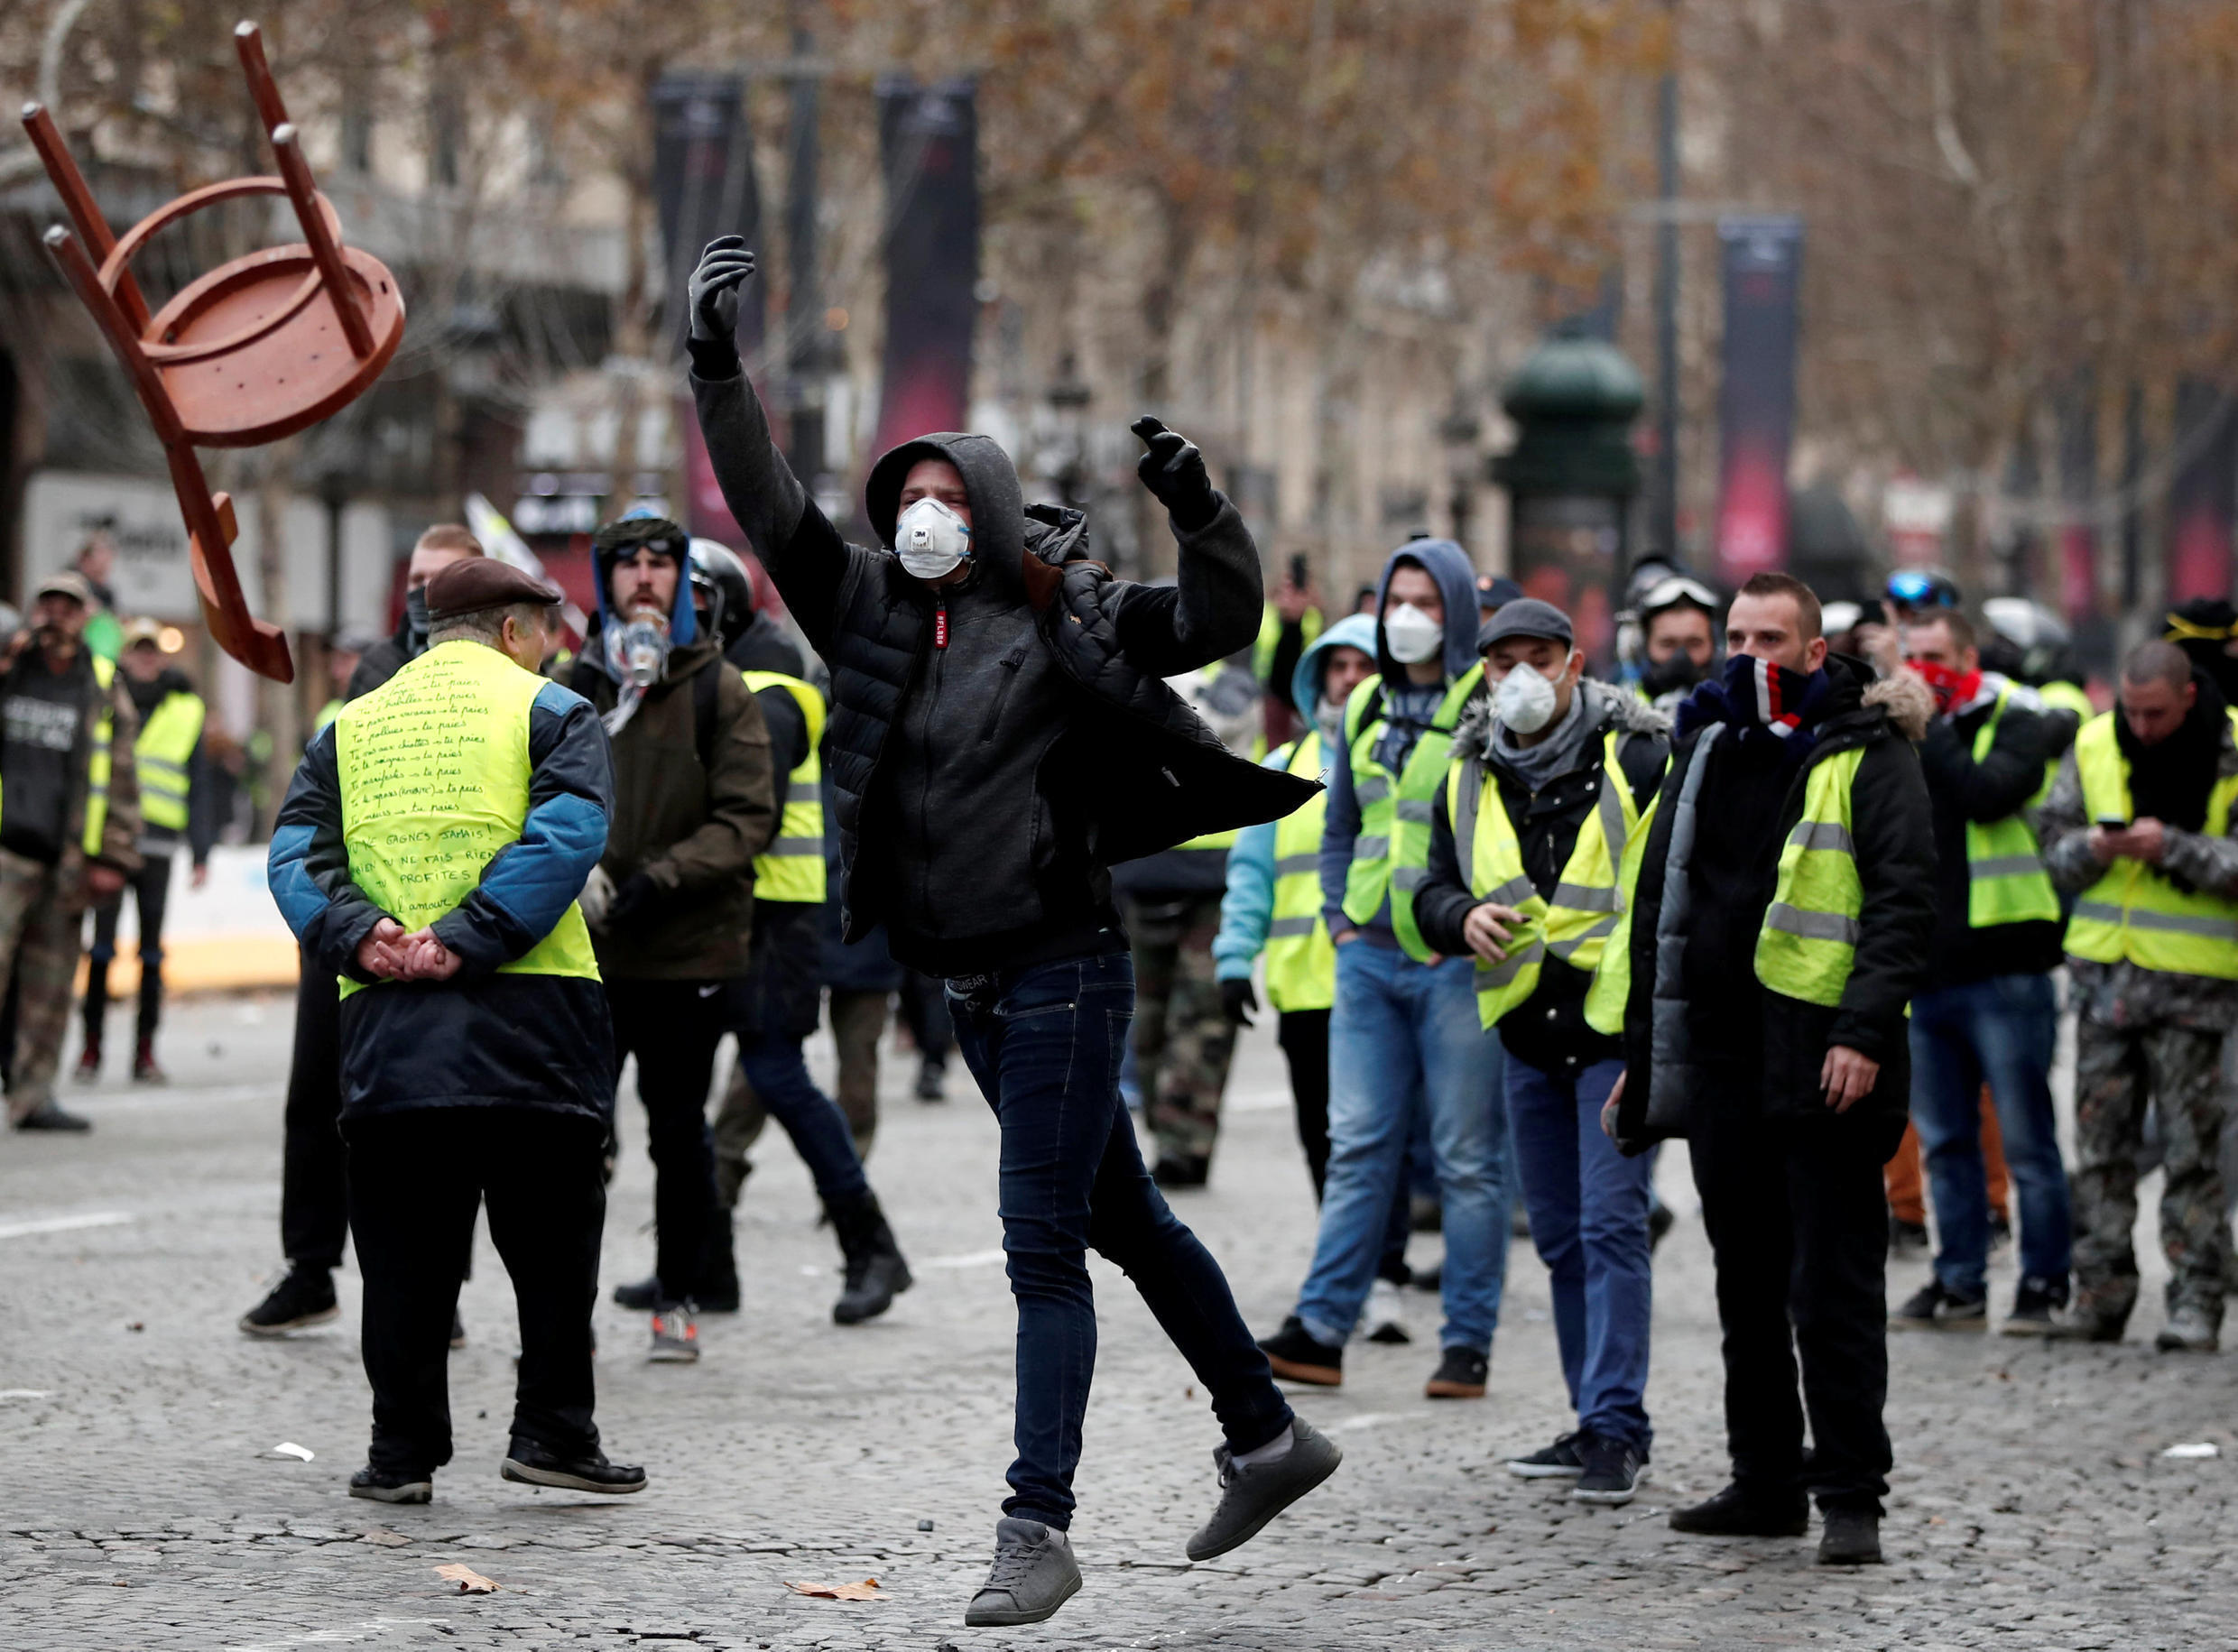 Yellow Vest protesters on the Champs Elysees, Saturday 24 November, 2018